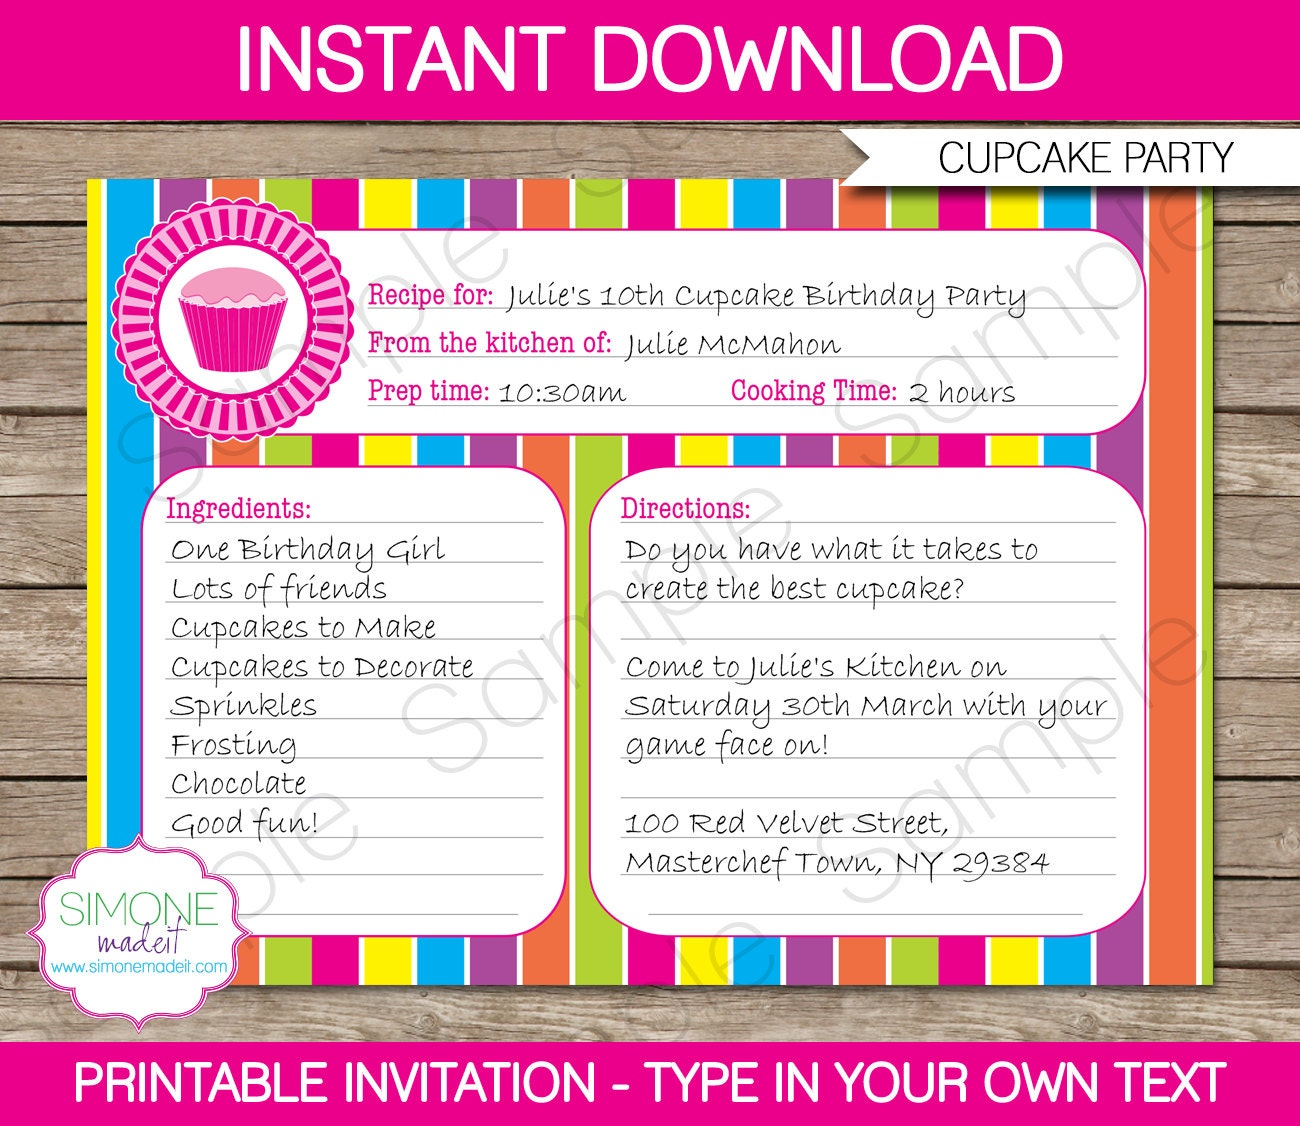 Sample invitation card for birthday party pasoevolist sample invitation card for birthday party cupcake invitation template recipe card invitation sample invitation card for birthday party stopboris Images